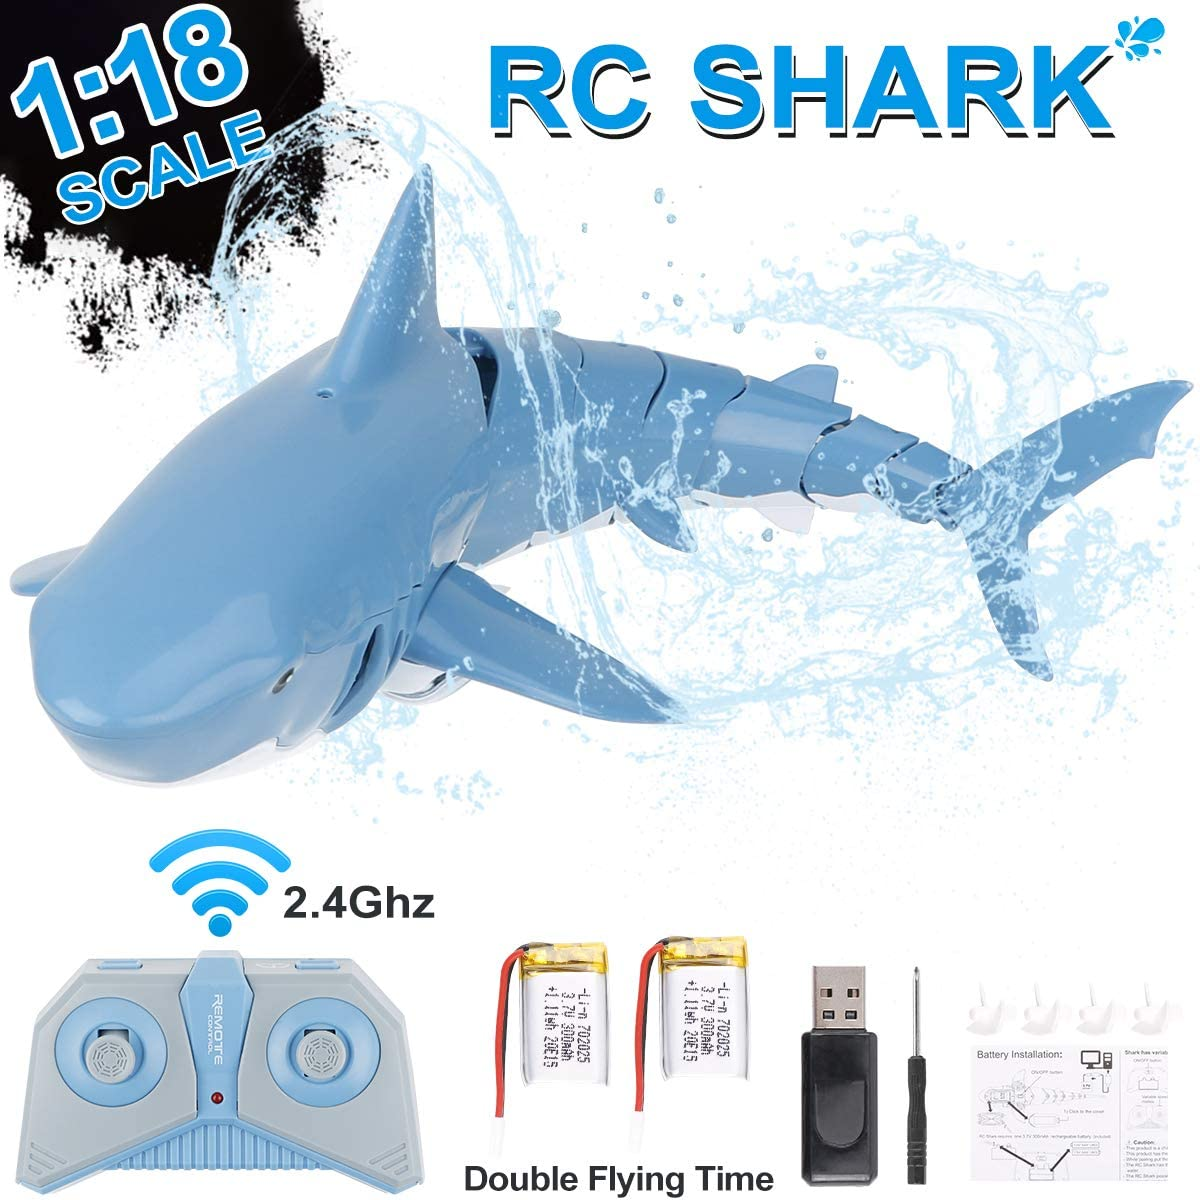 FPVERA RC Boat Remote Control RC Shark Boat 2.4GHz Racing Boat Simulation Shark Toy for Kids Gift Swimming Pool Bathroom Toy (Blue)